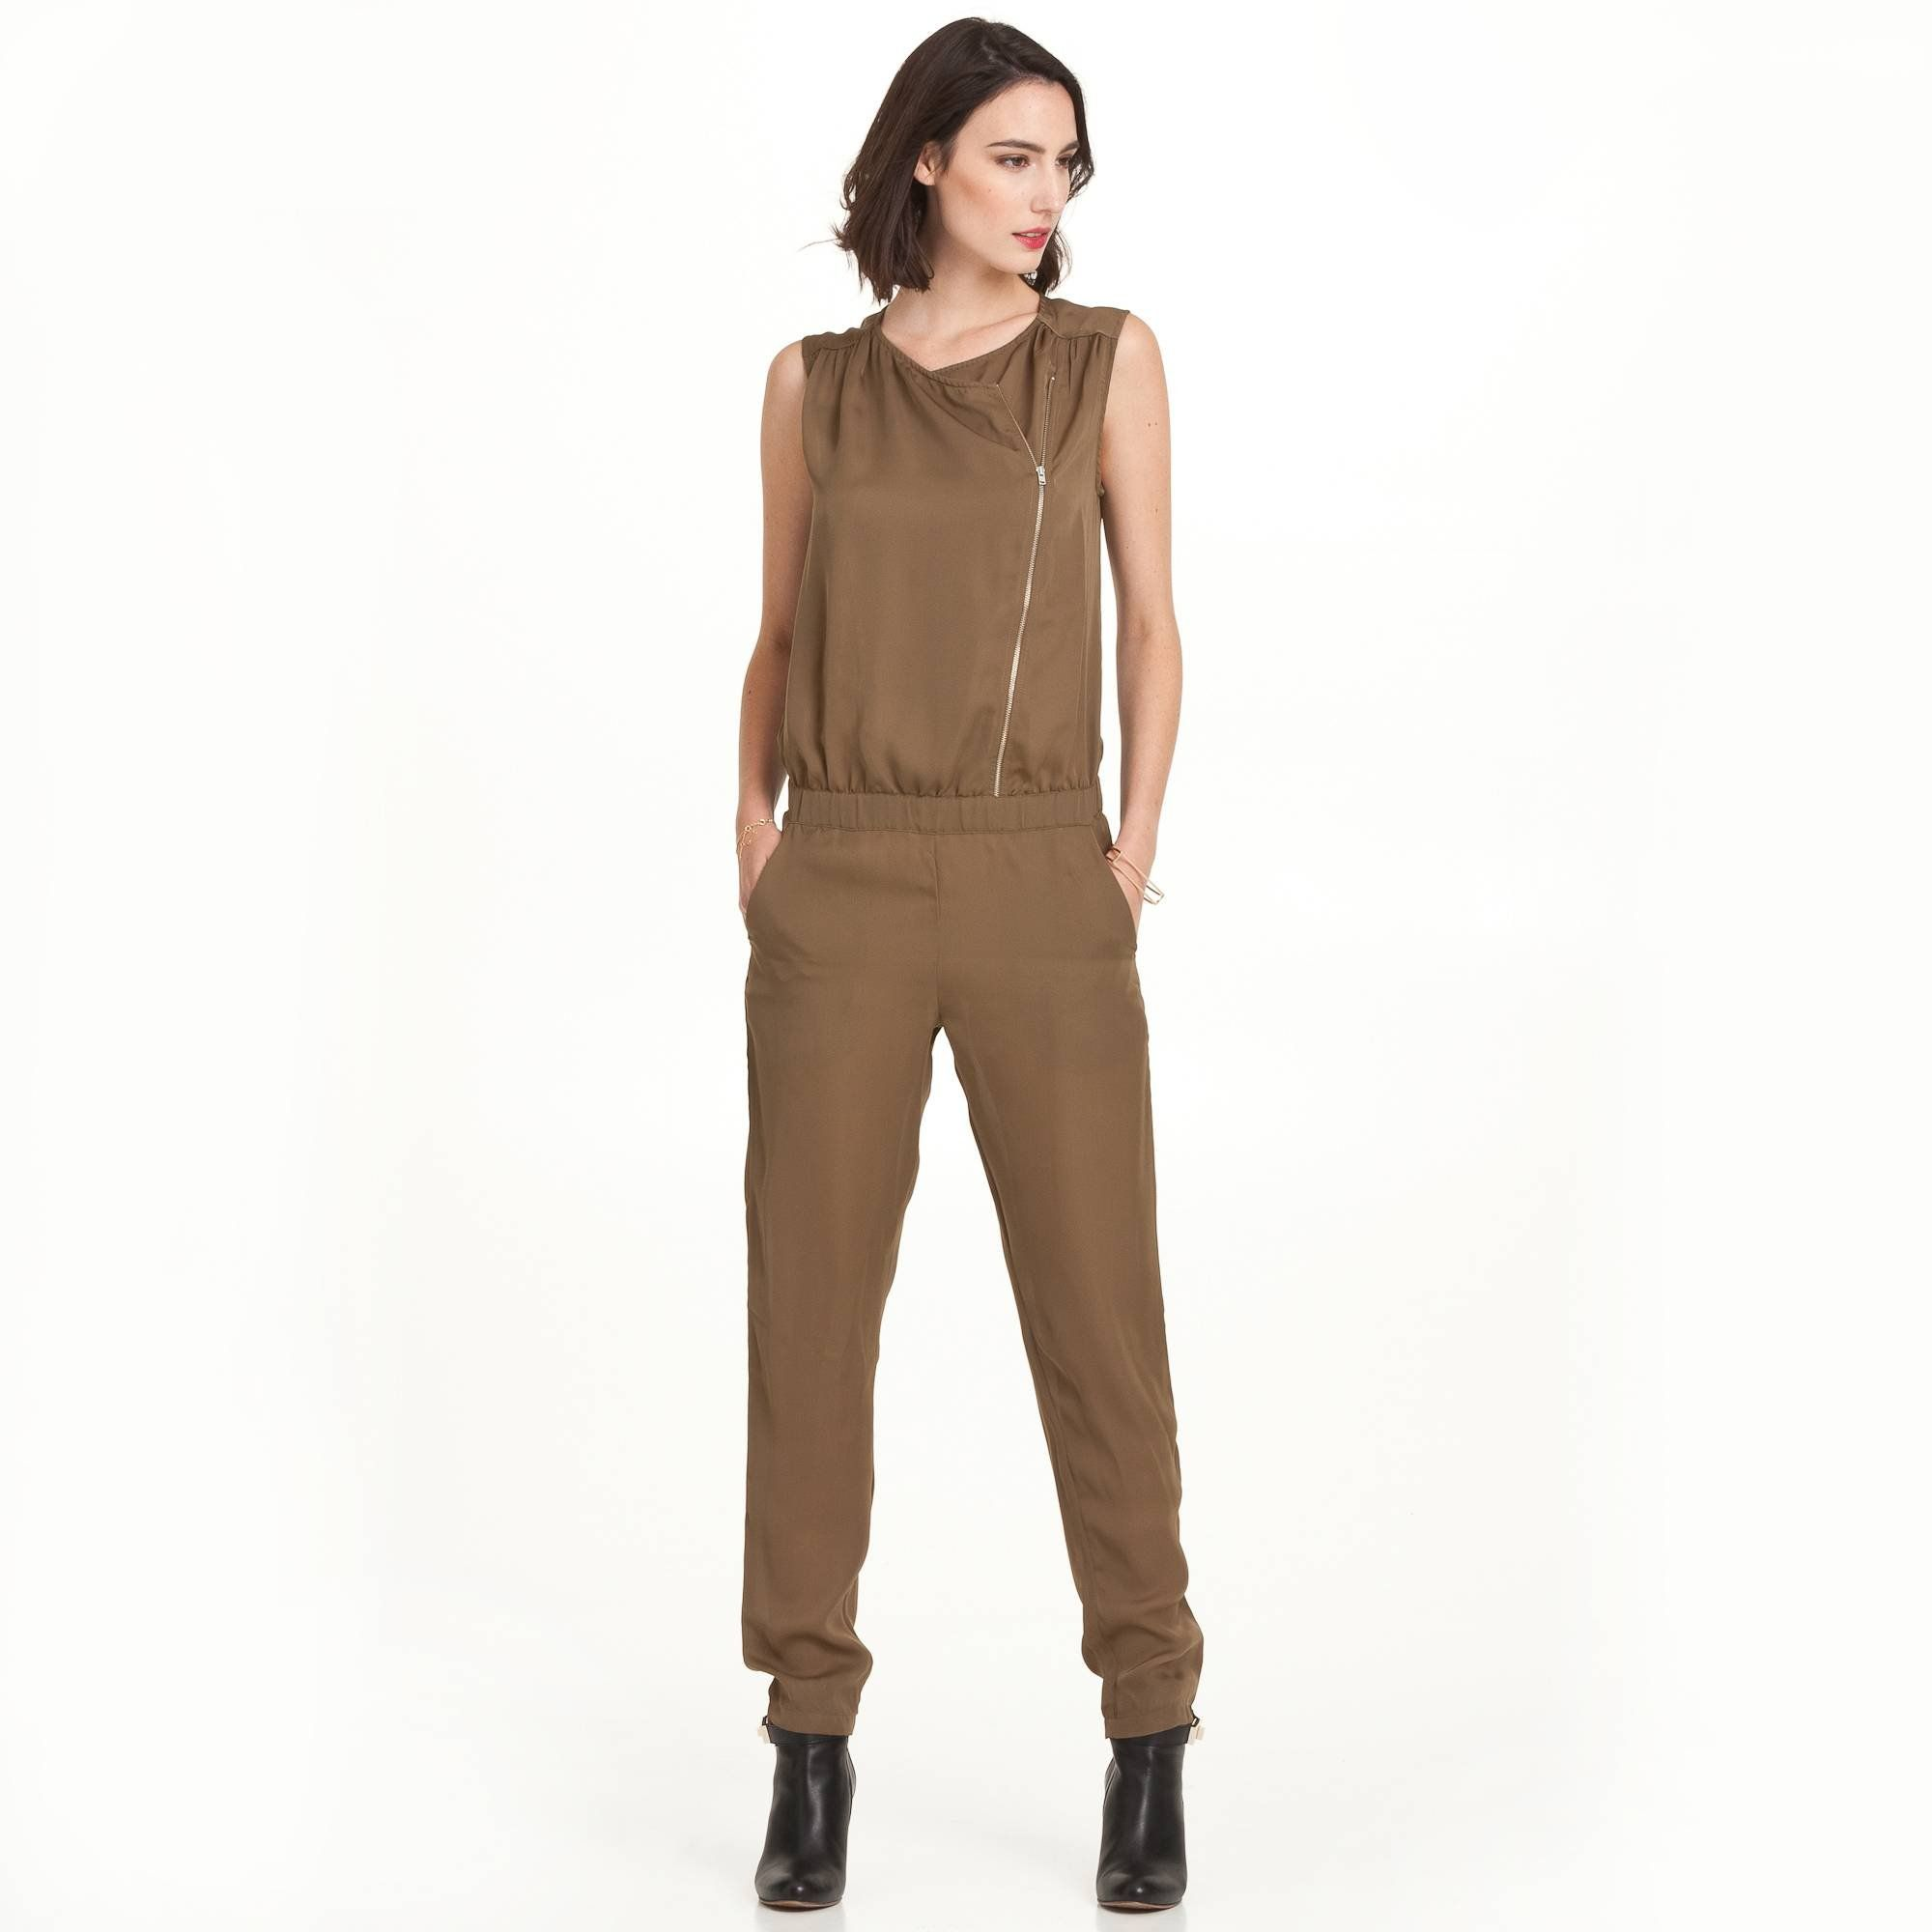 combinaison pantalon imprimée zippée femme 3 suisses collection